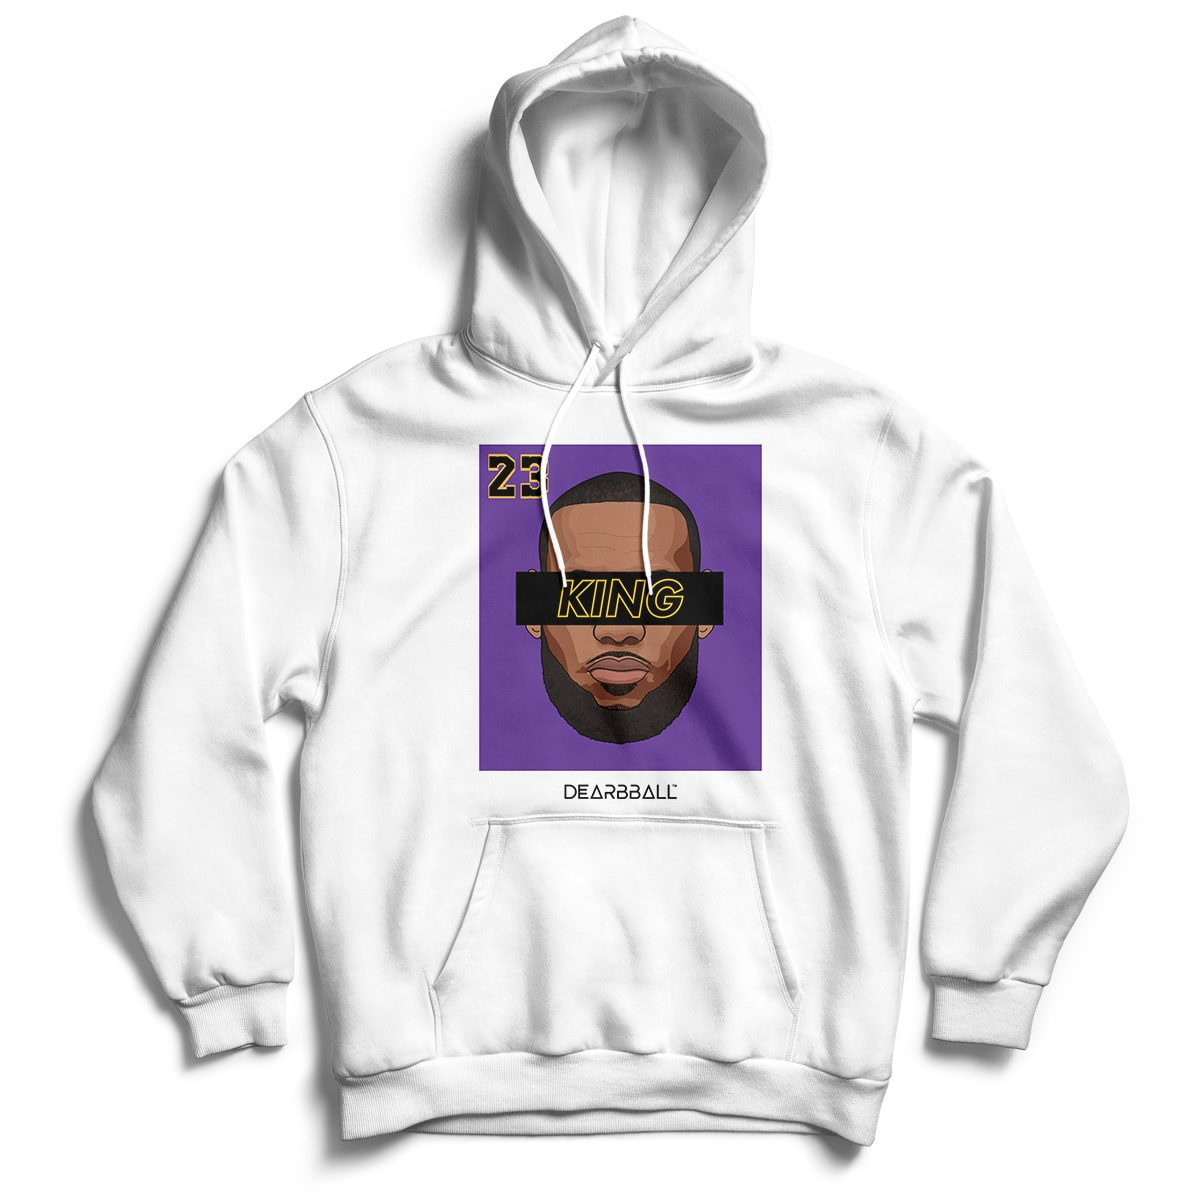 Lebron James Hoodie - KING 23 Purple Black Los Angeles Lakers Basketball Dearbball white